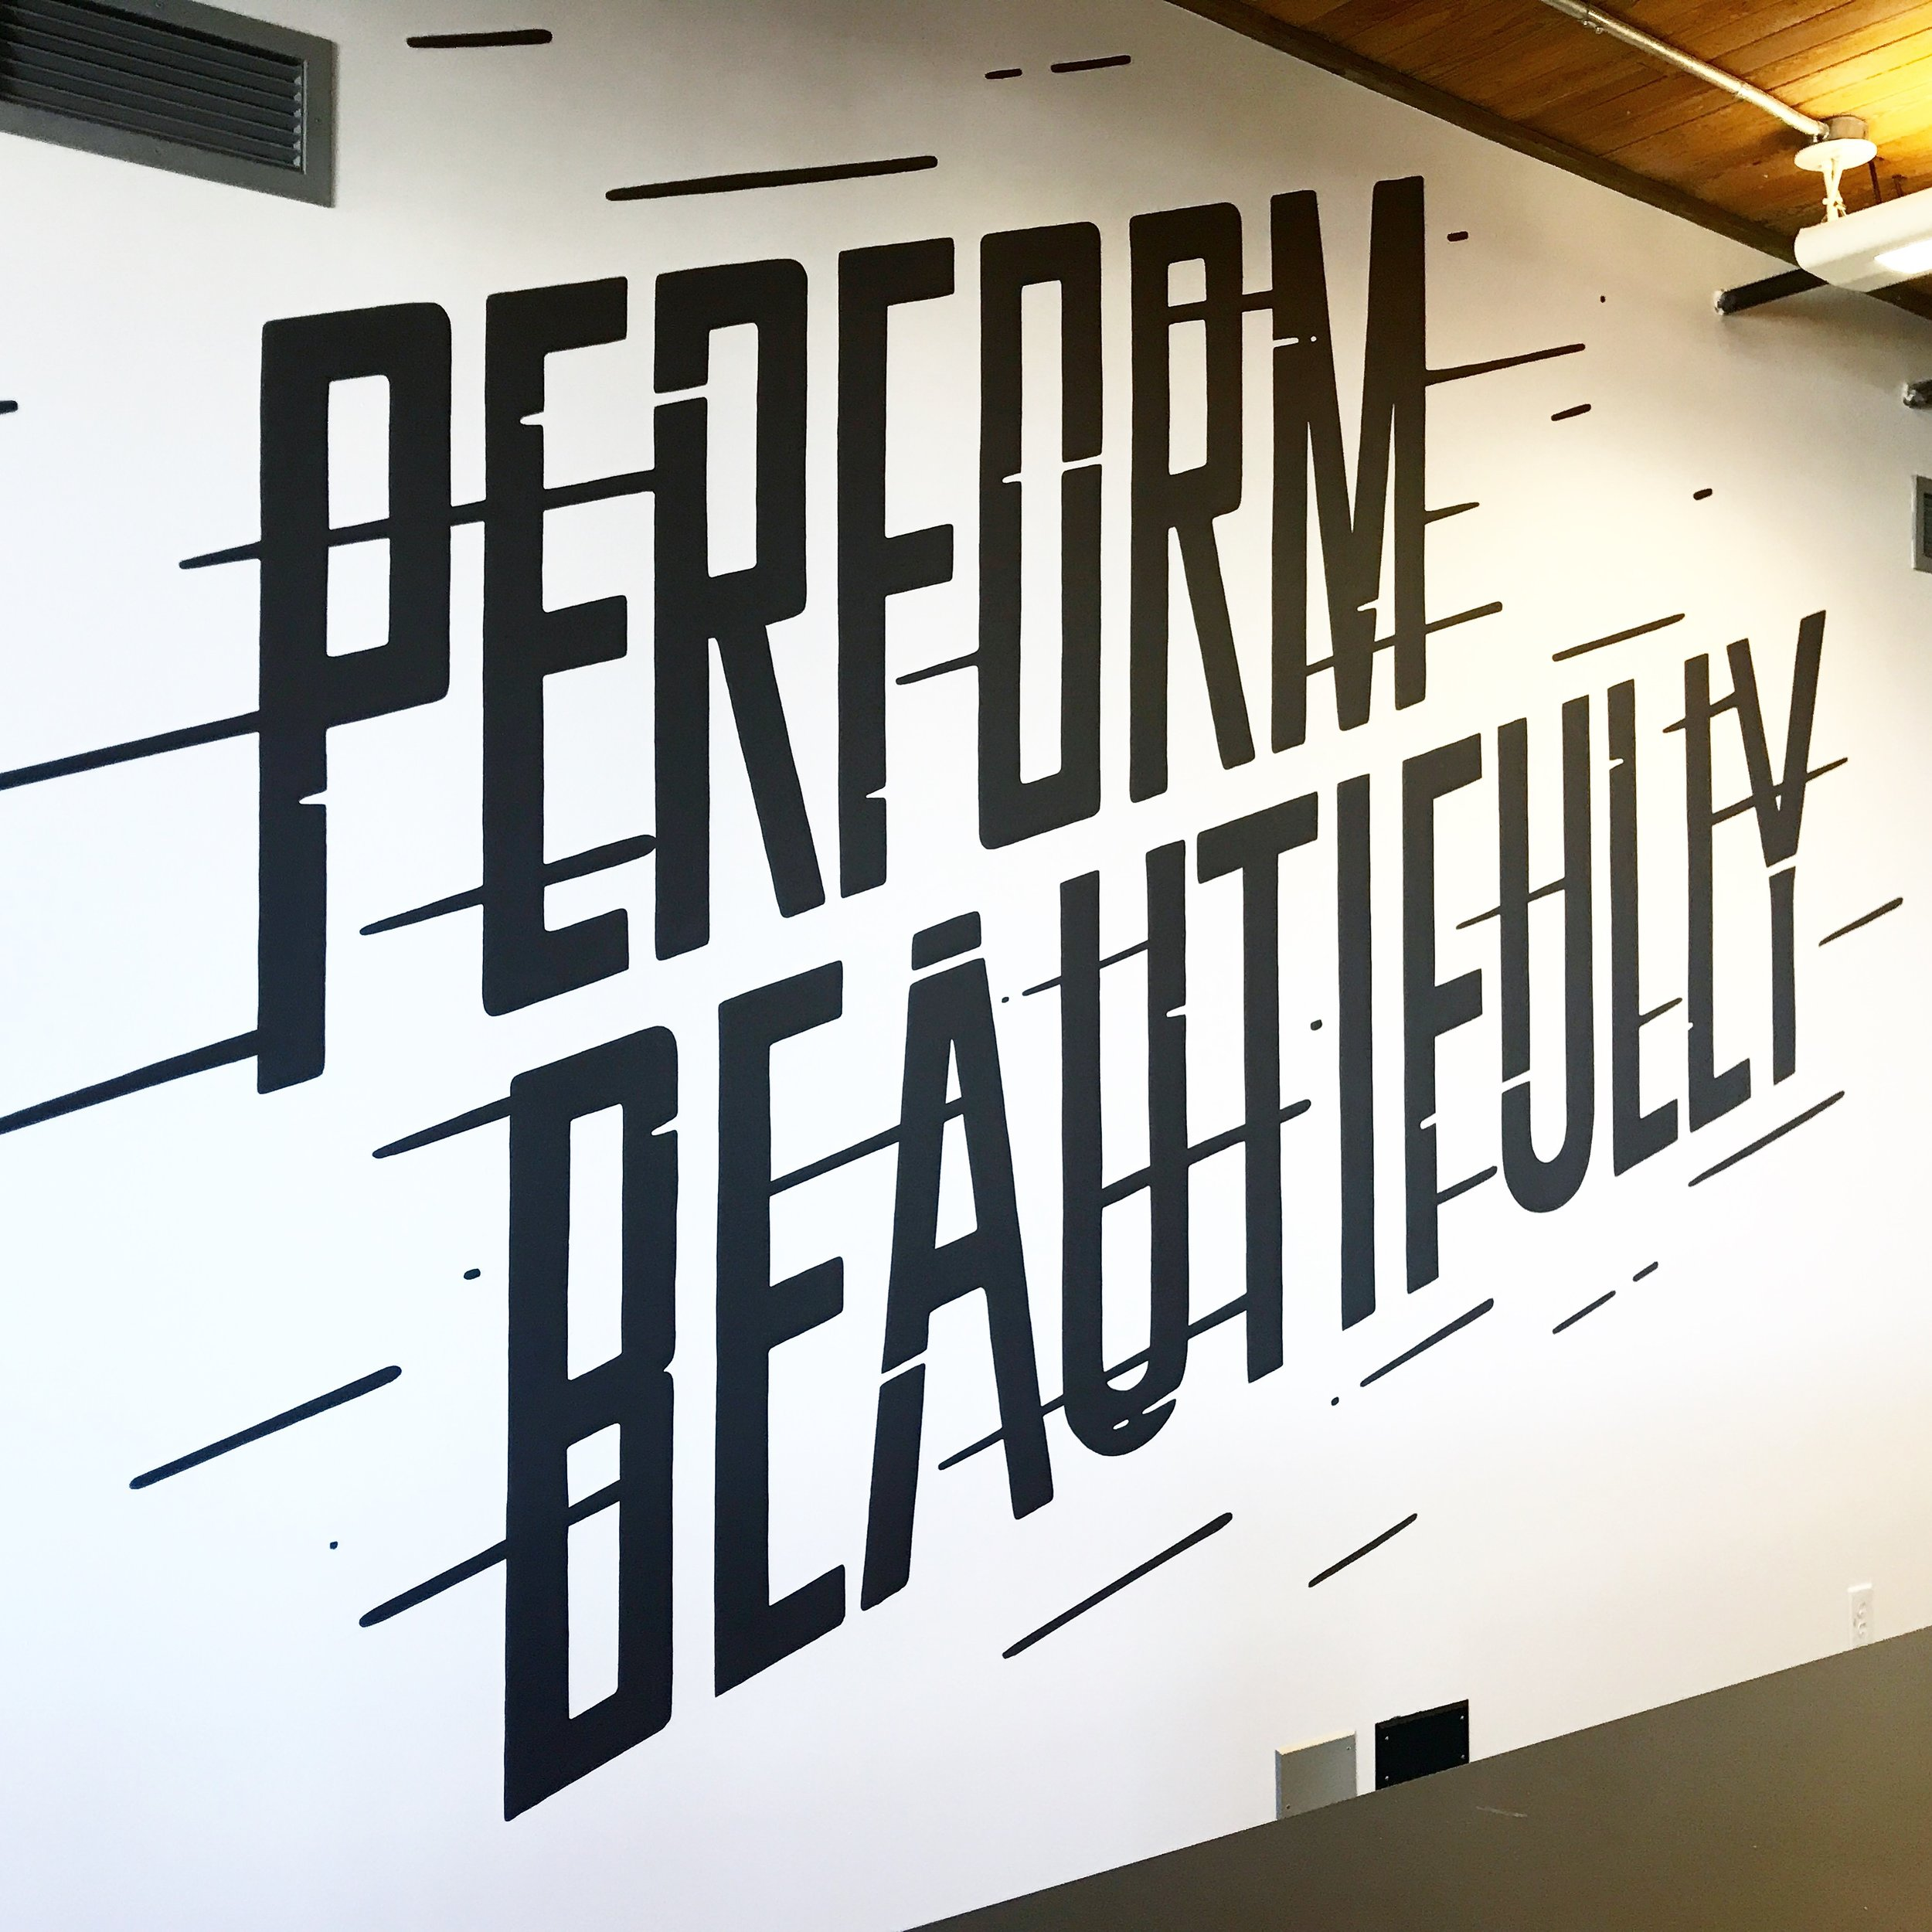 Perform Beautifully Wall Mural